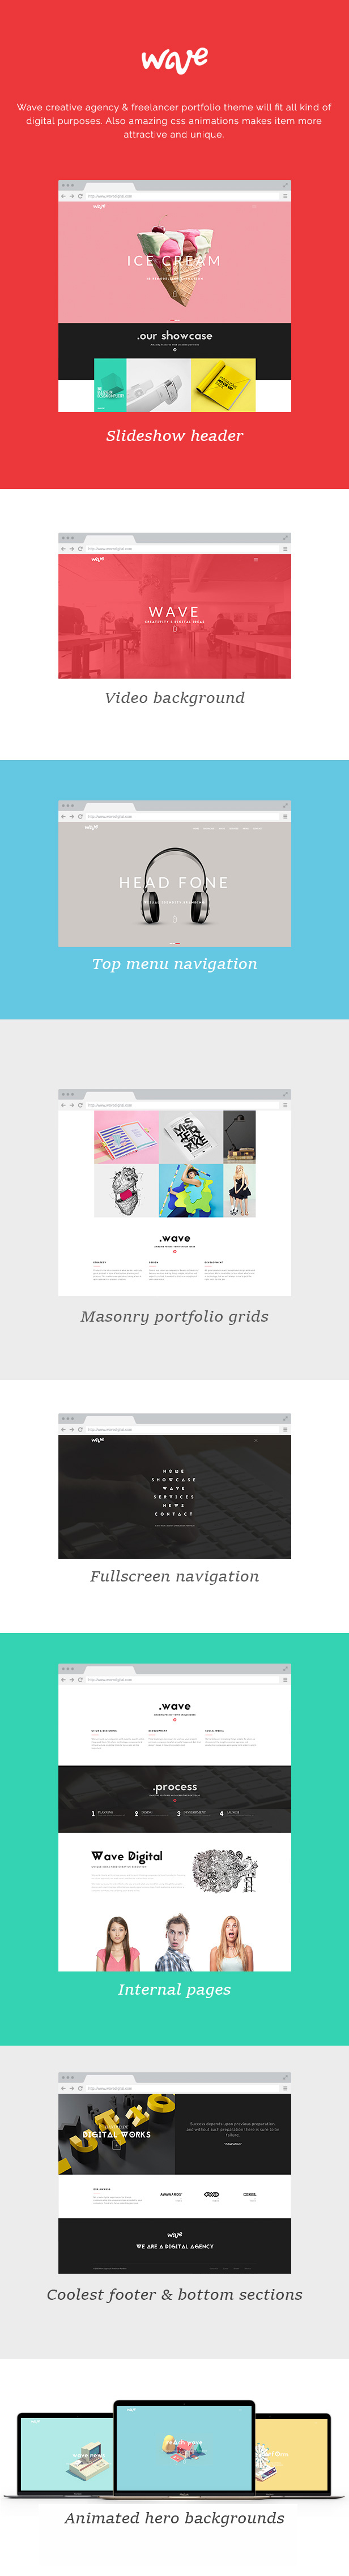 Wave | Agency & Freelancer Portfolio - Muse template premium